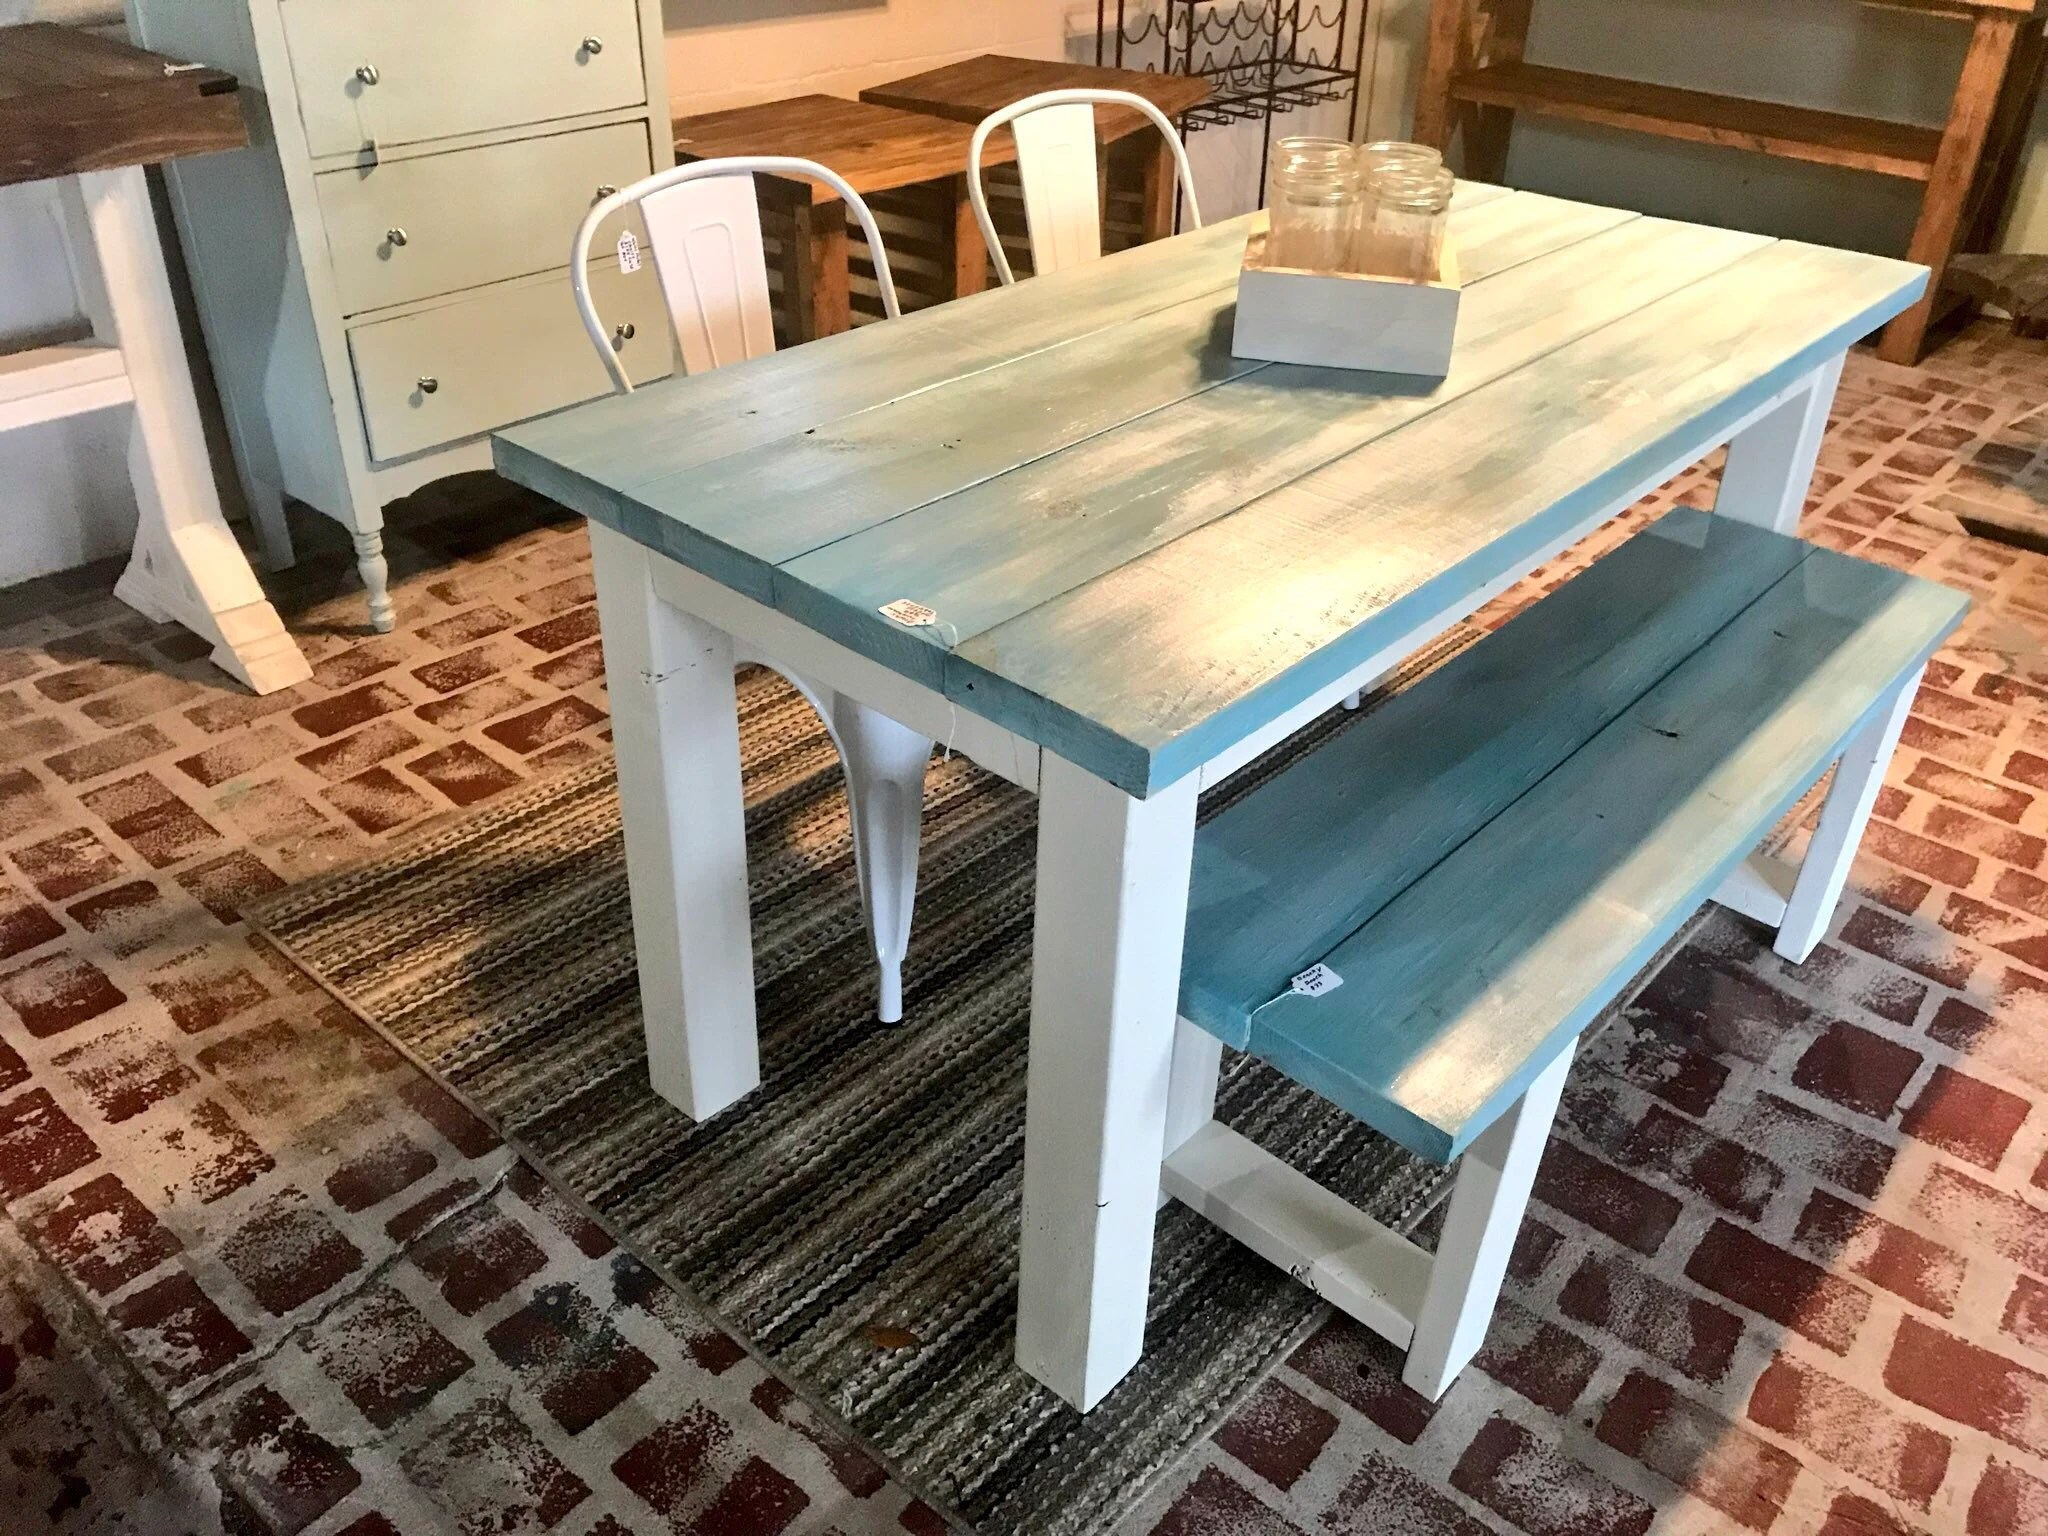 farmhouse table and chairs with bench posture chair ikea etsy vintage aqua small set metal gray white wash base 5ft dining